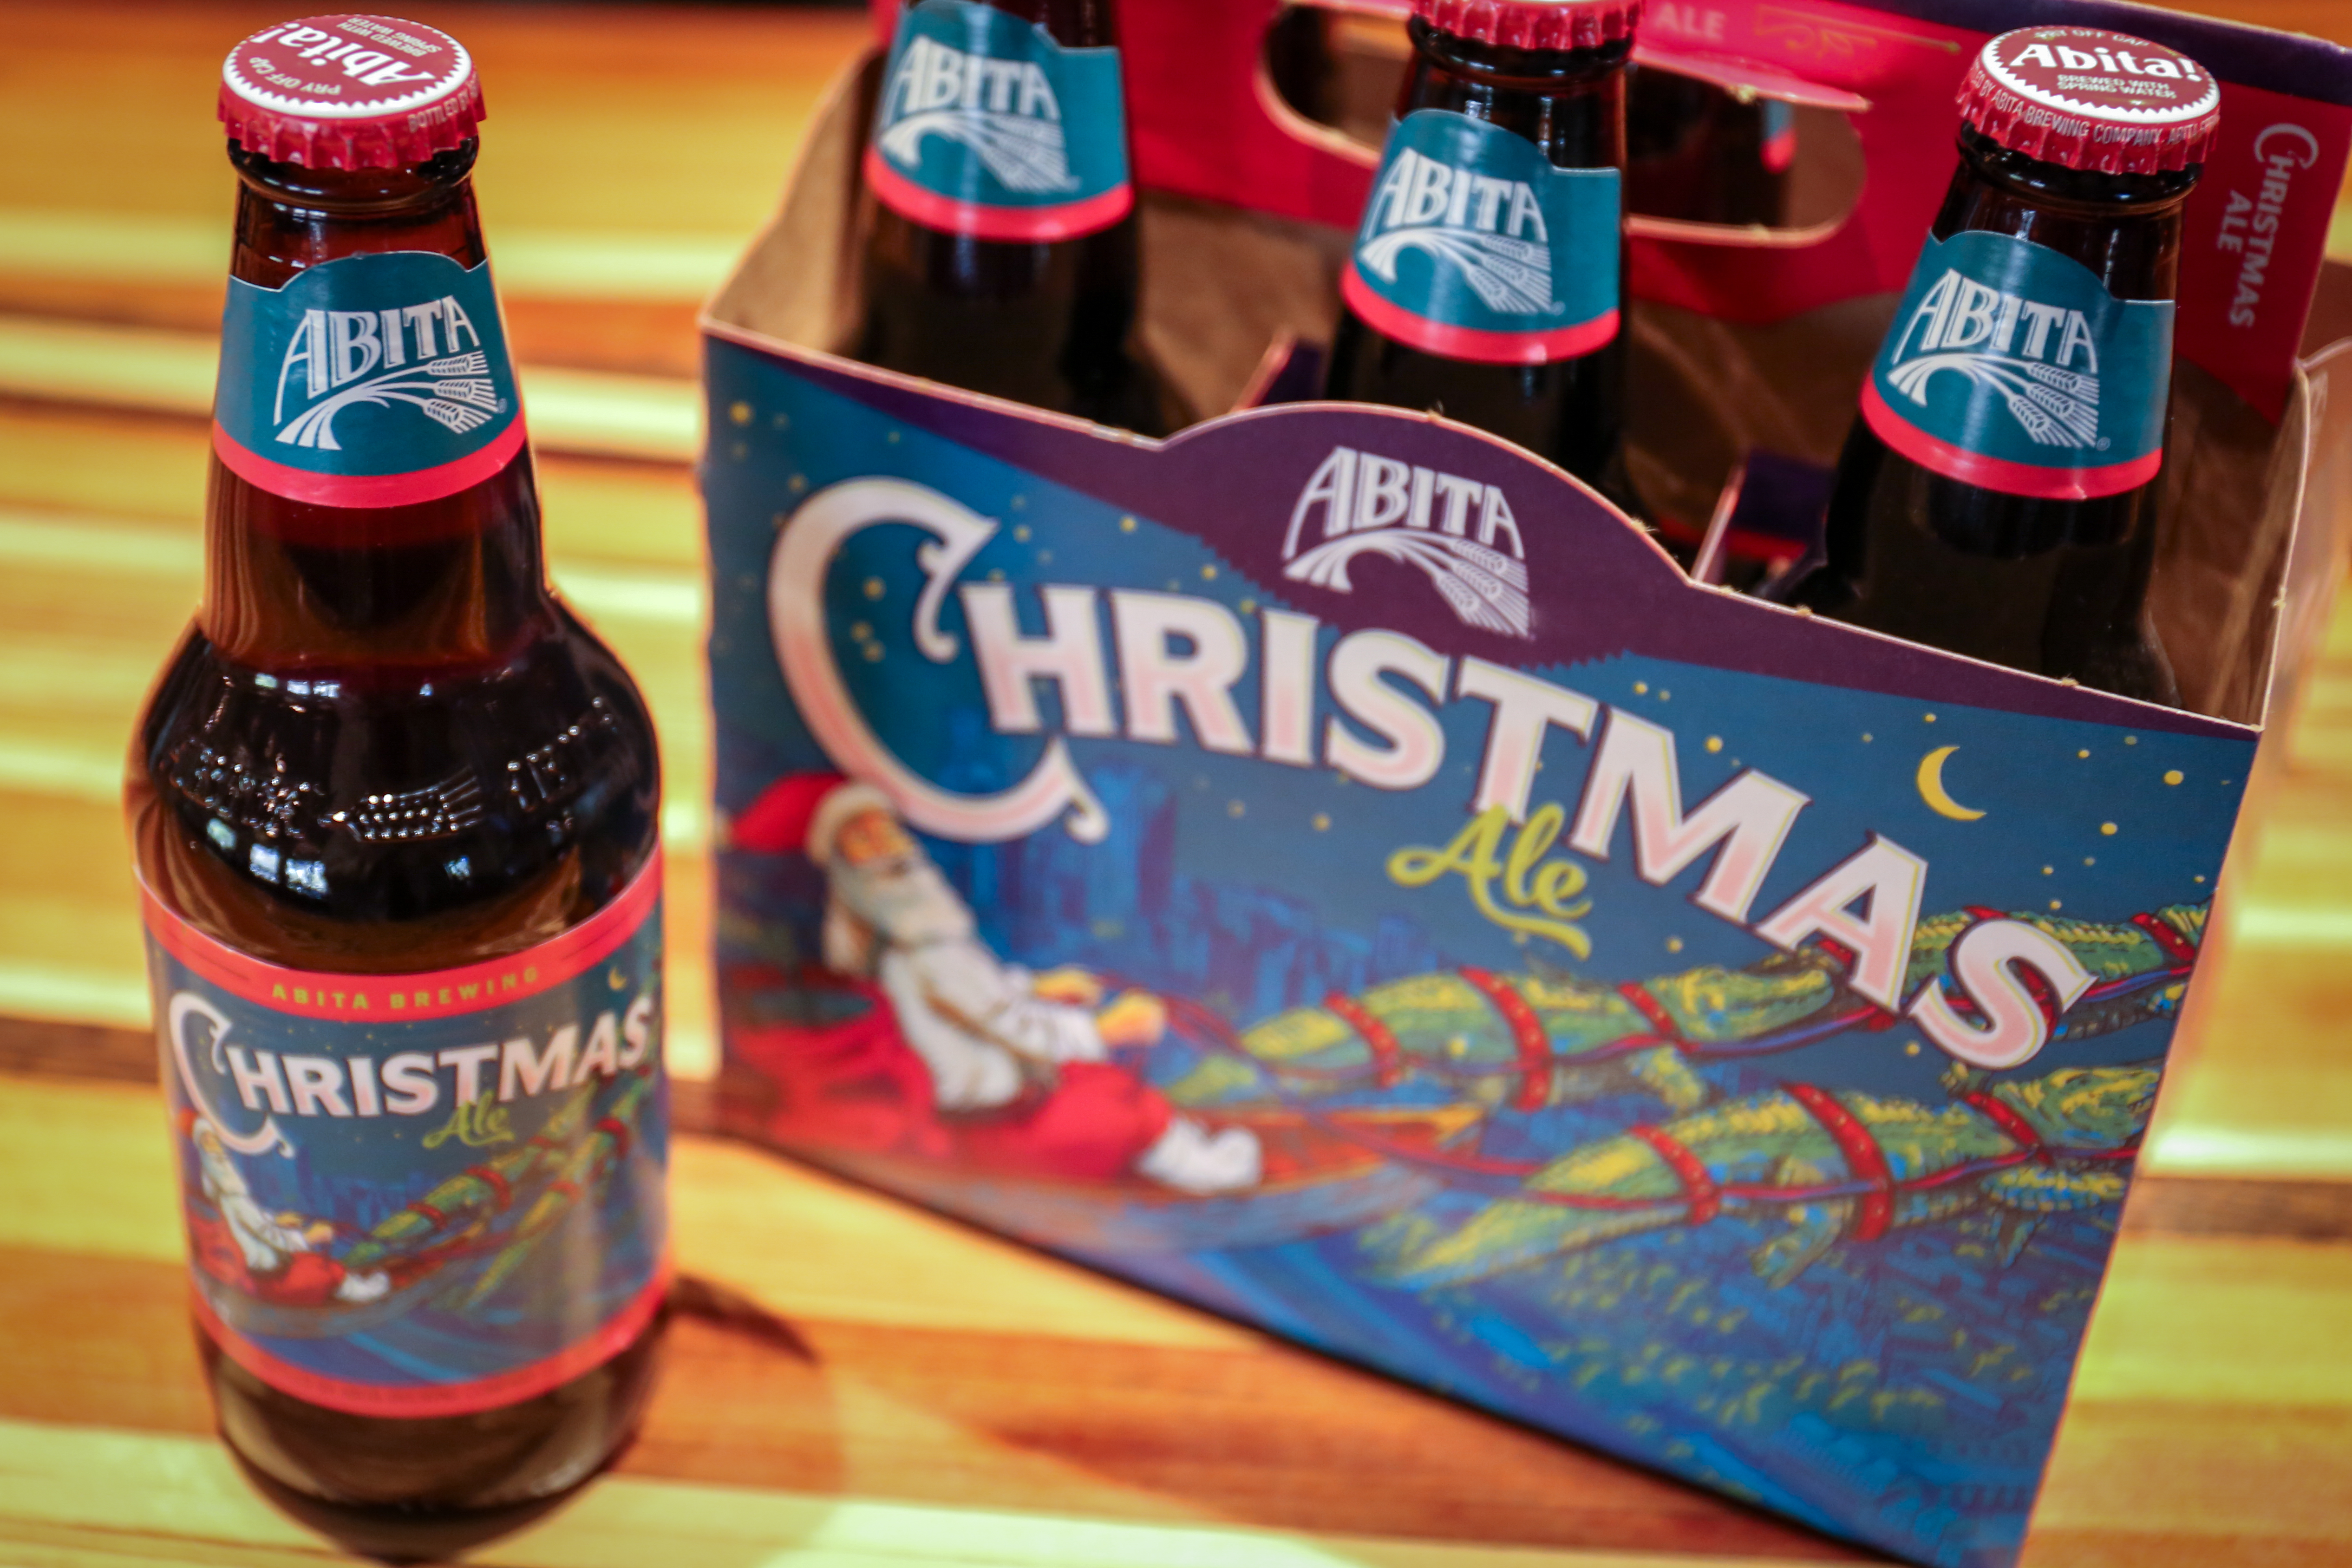 2 on our list of 12 ways to spread abita christmas cheer is our christmas ale every year our recipe changes and this years brew is a brown ale that is - Christmas Ale Recipe